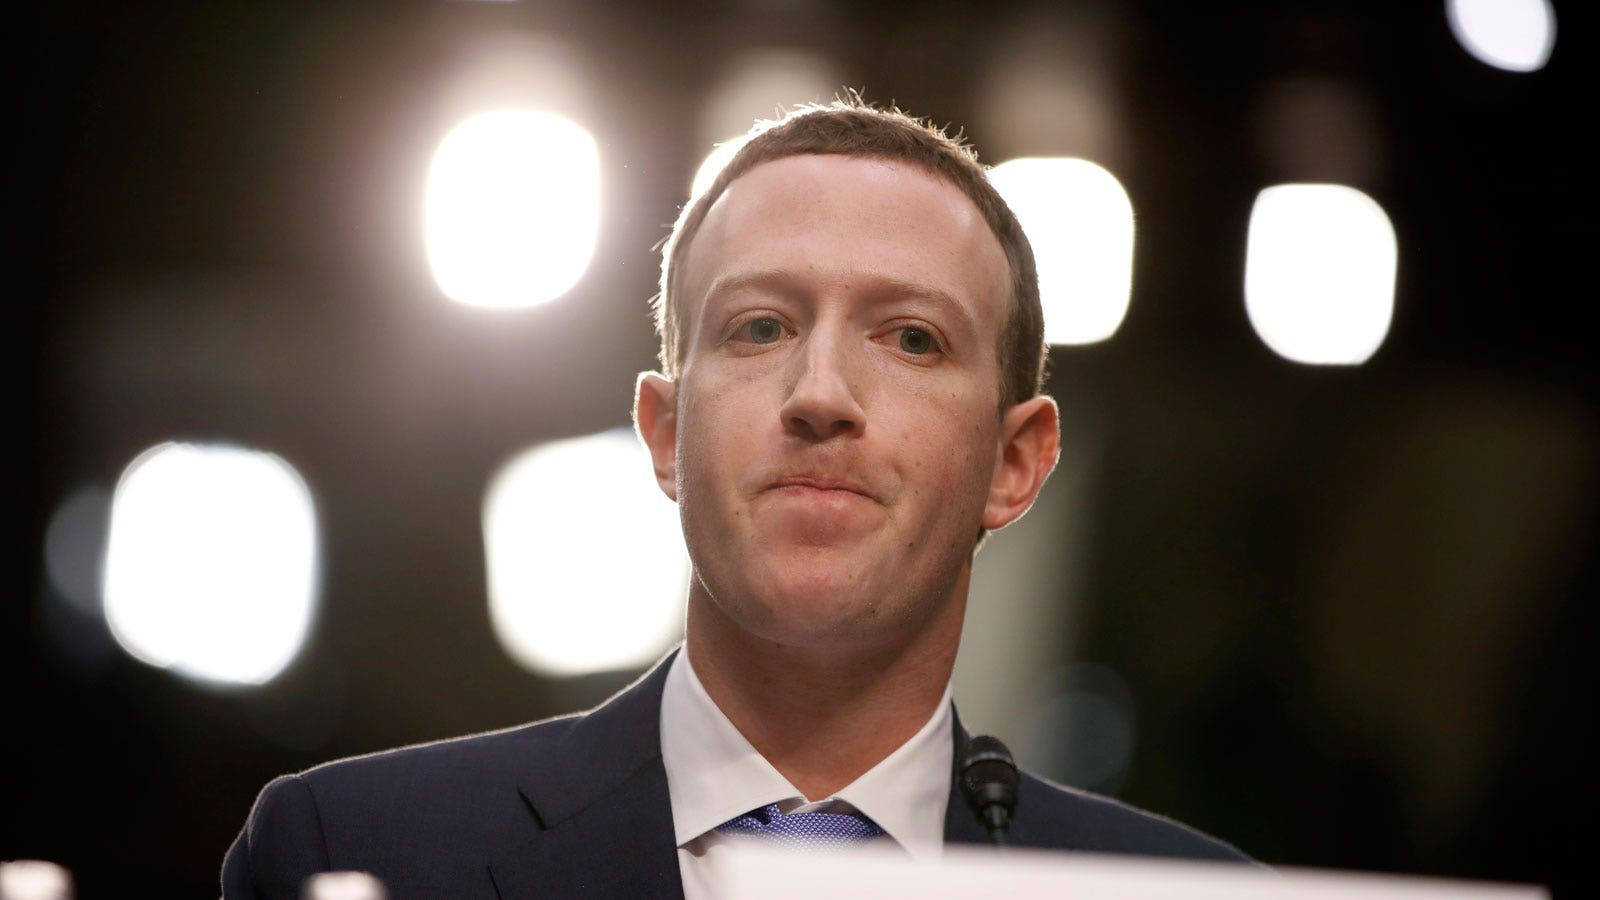 Zuckerberg: Facebook 'somewhere in between' newspapers and telecoms